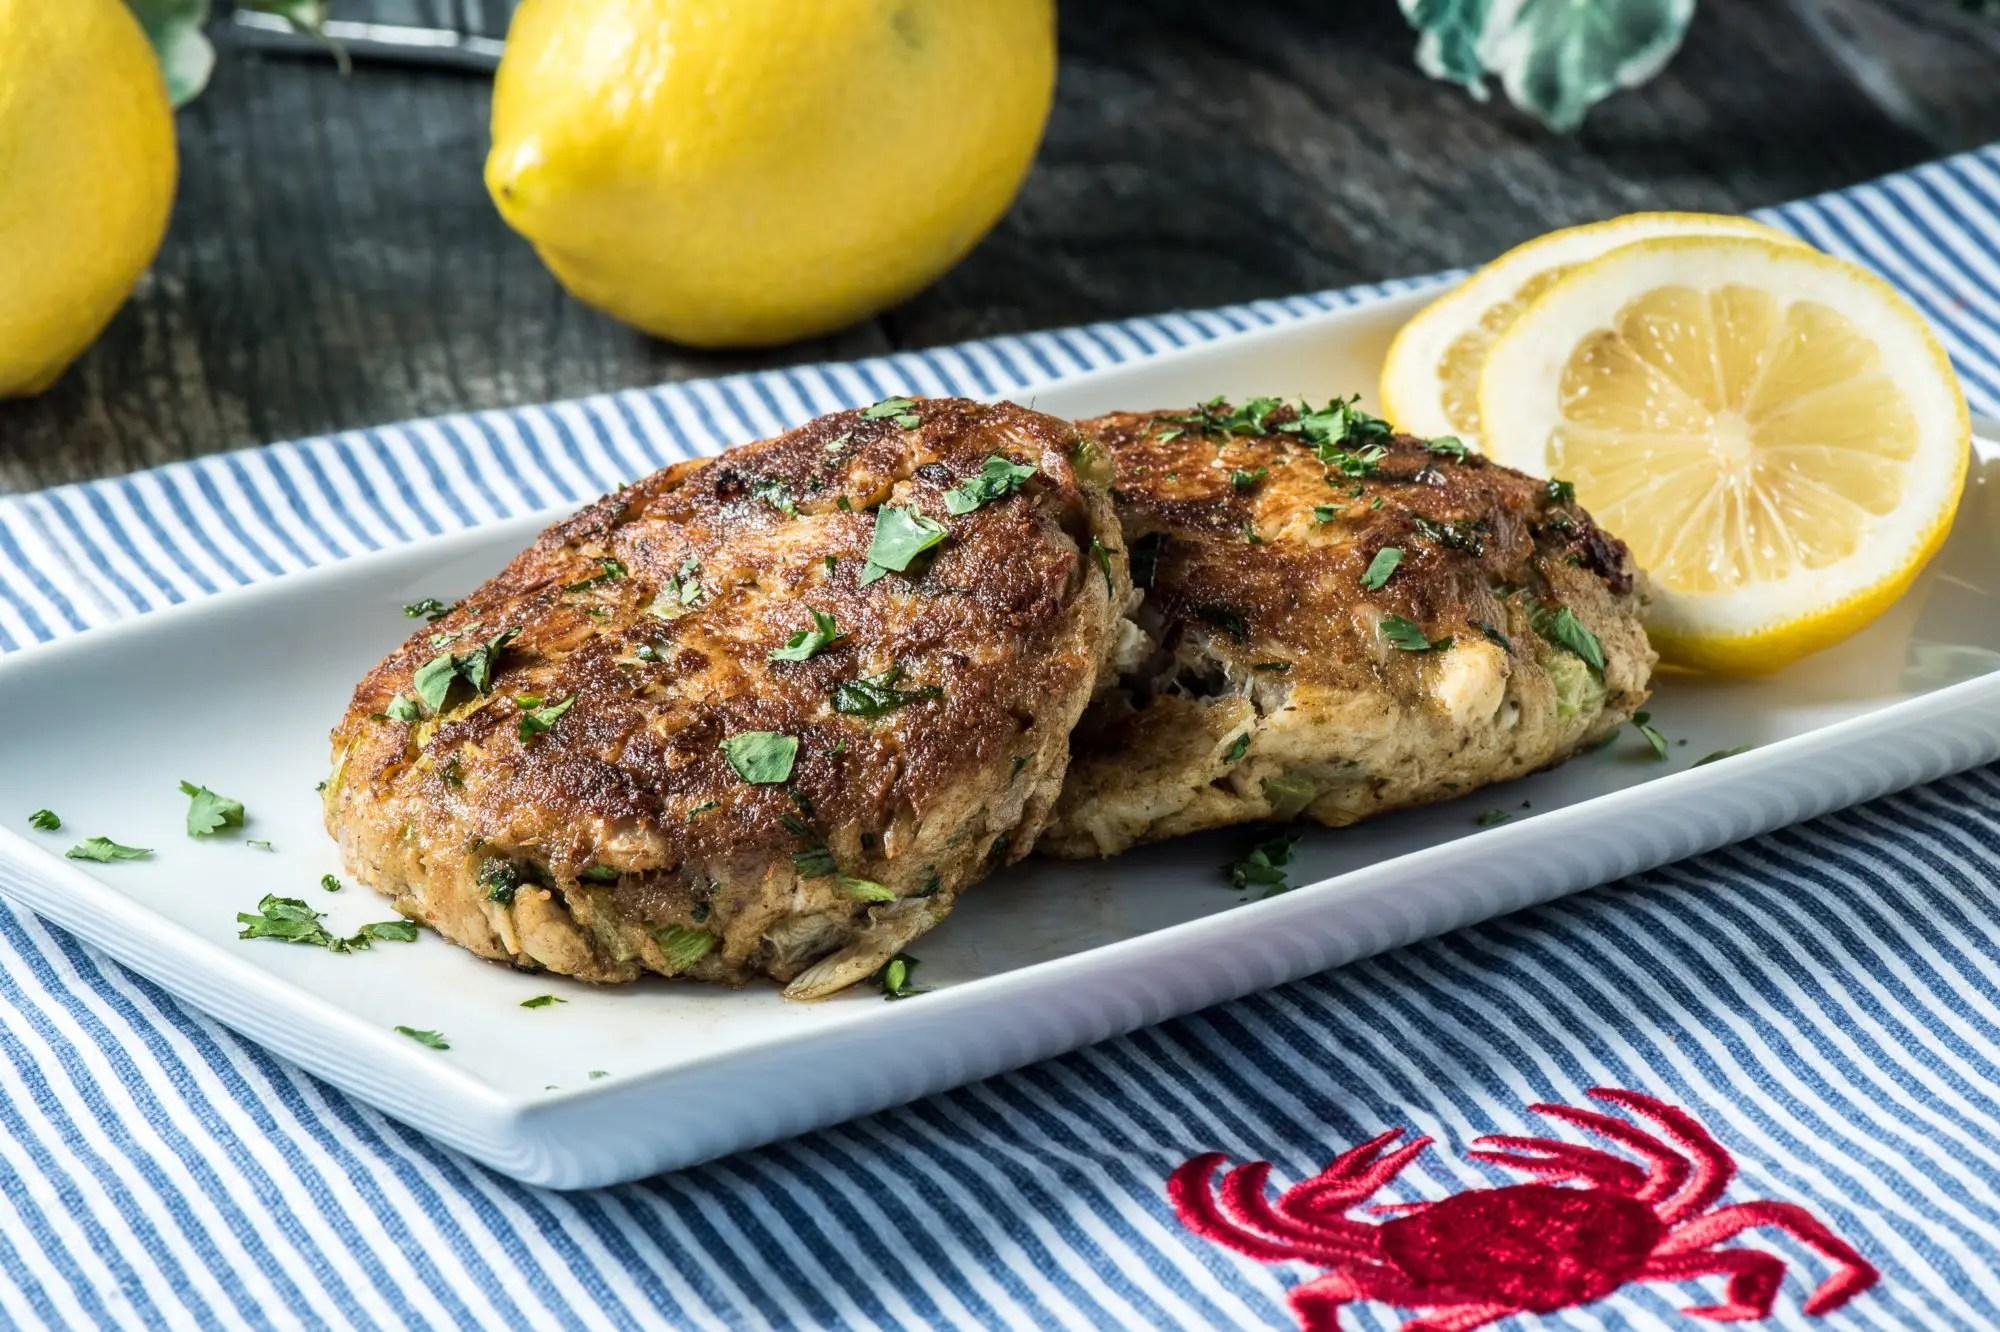 Low Carb Crab Cakes - Tasty Low Carb